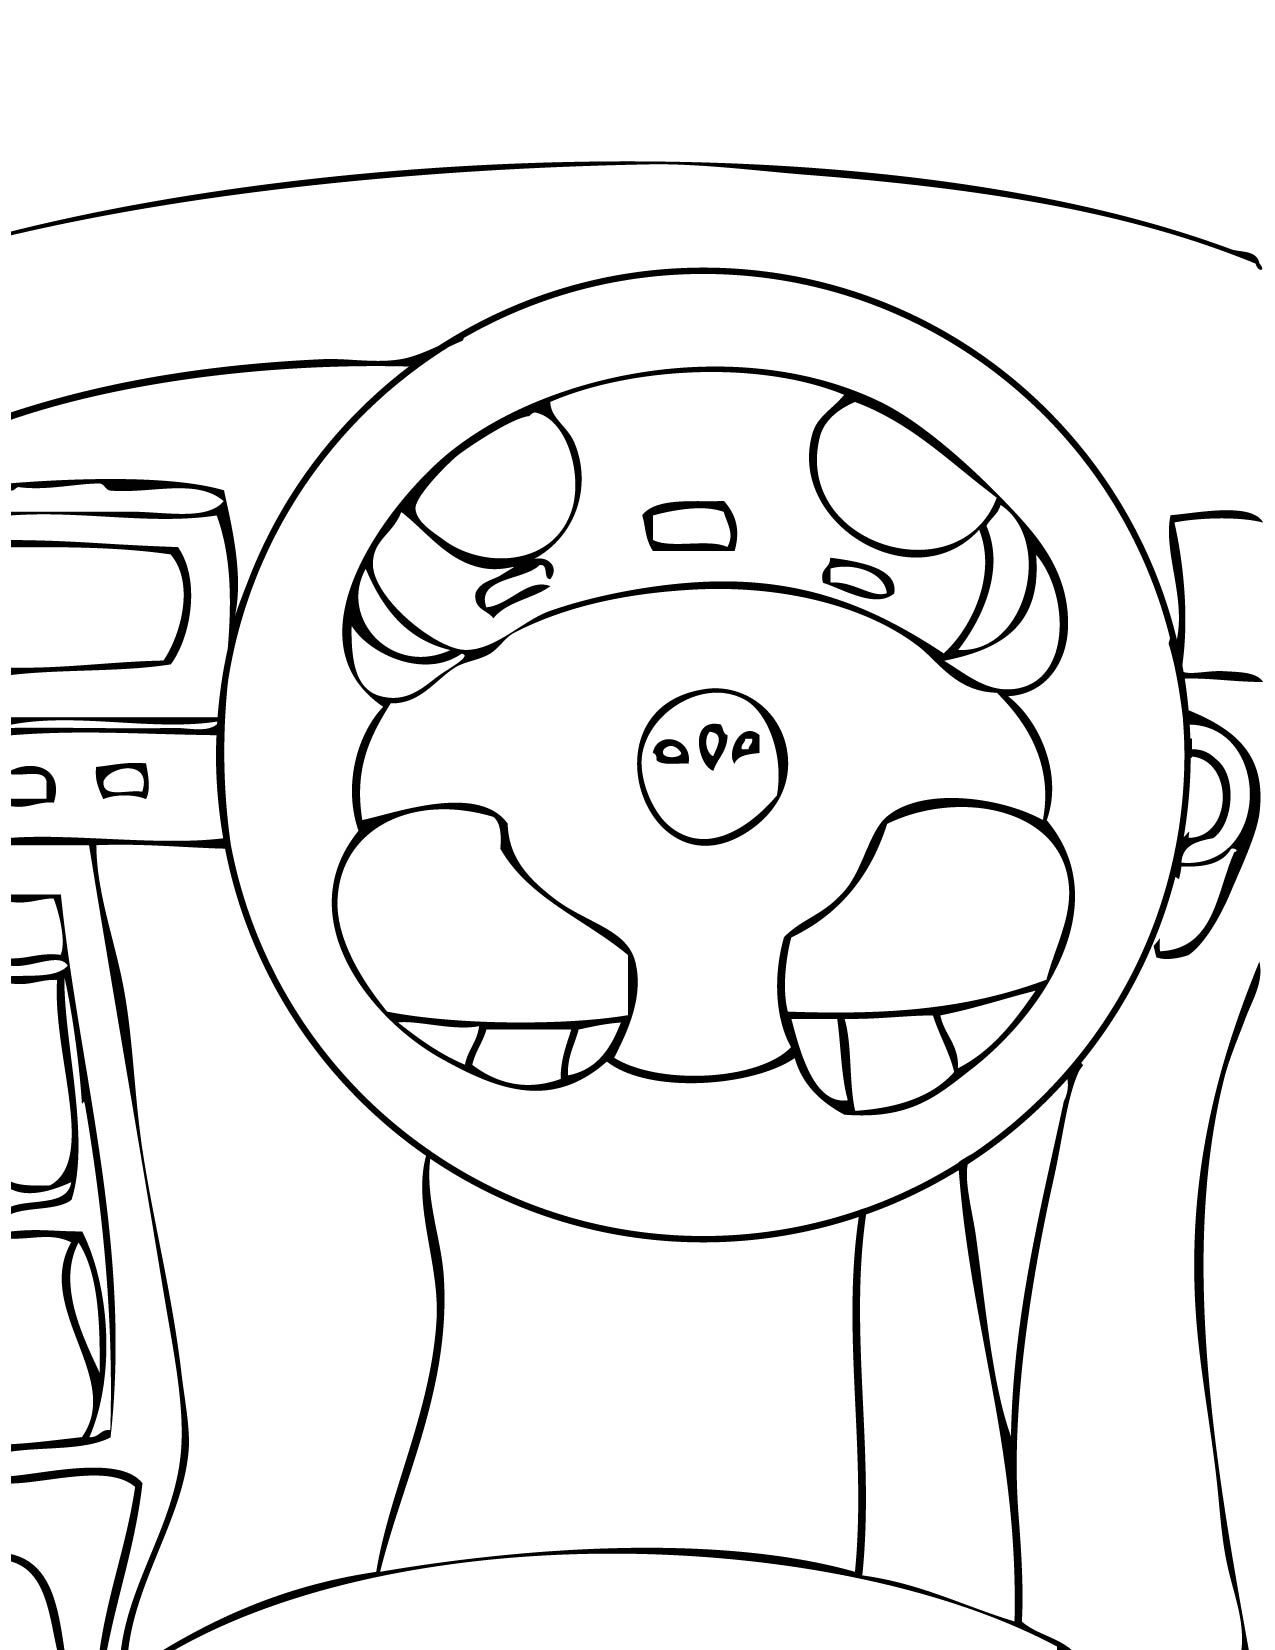 Car Steering Wheel Coloring Pages Wheel Steering Wheel